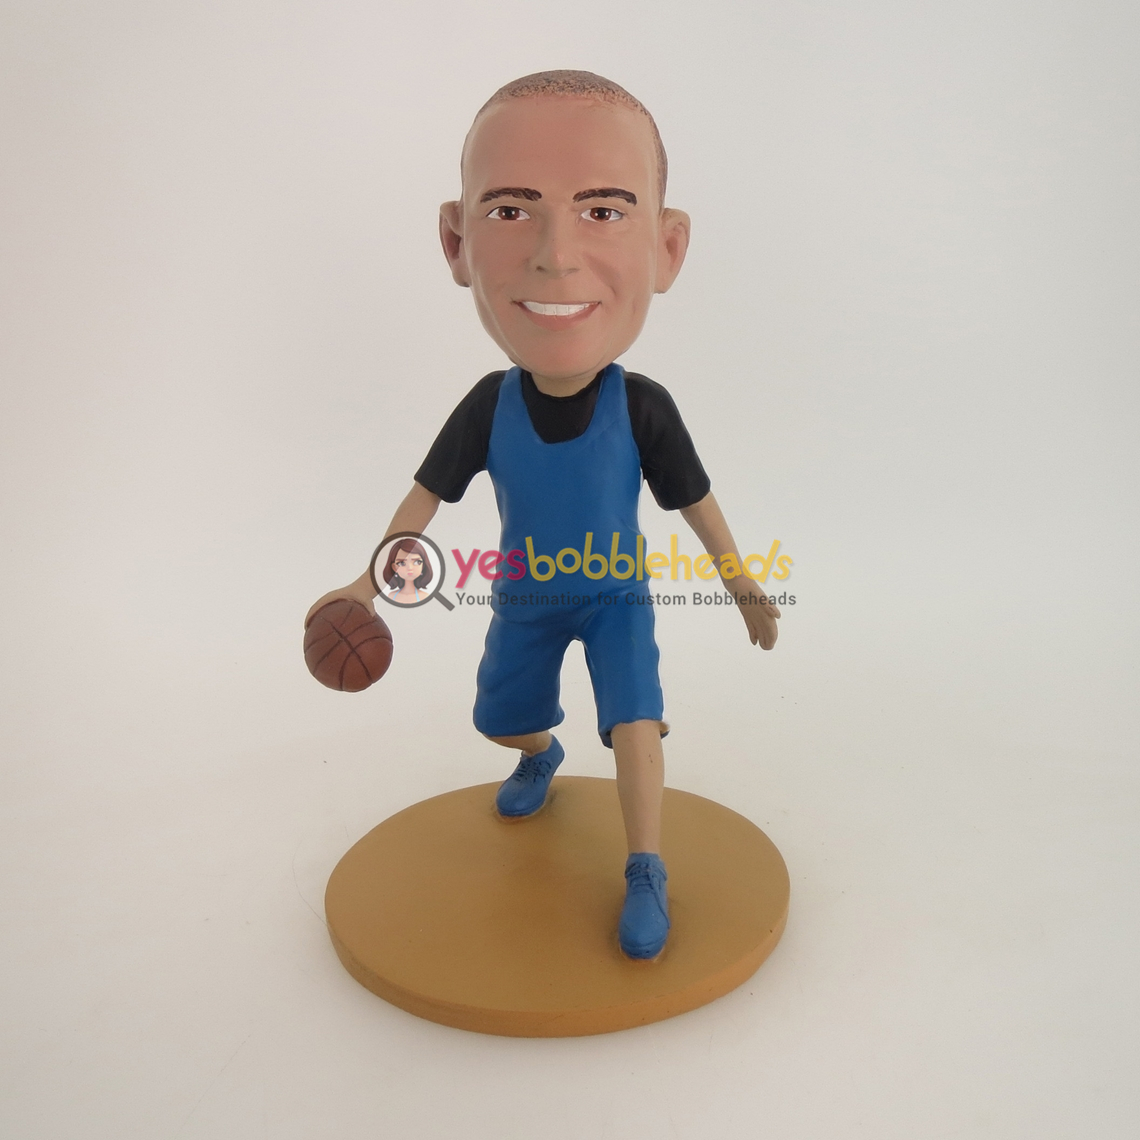 Picture of Custom Bobblehead Doll: Basketball Player